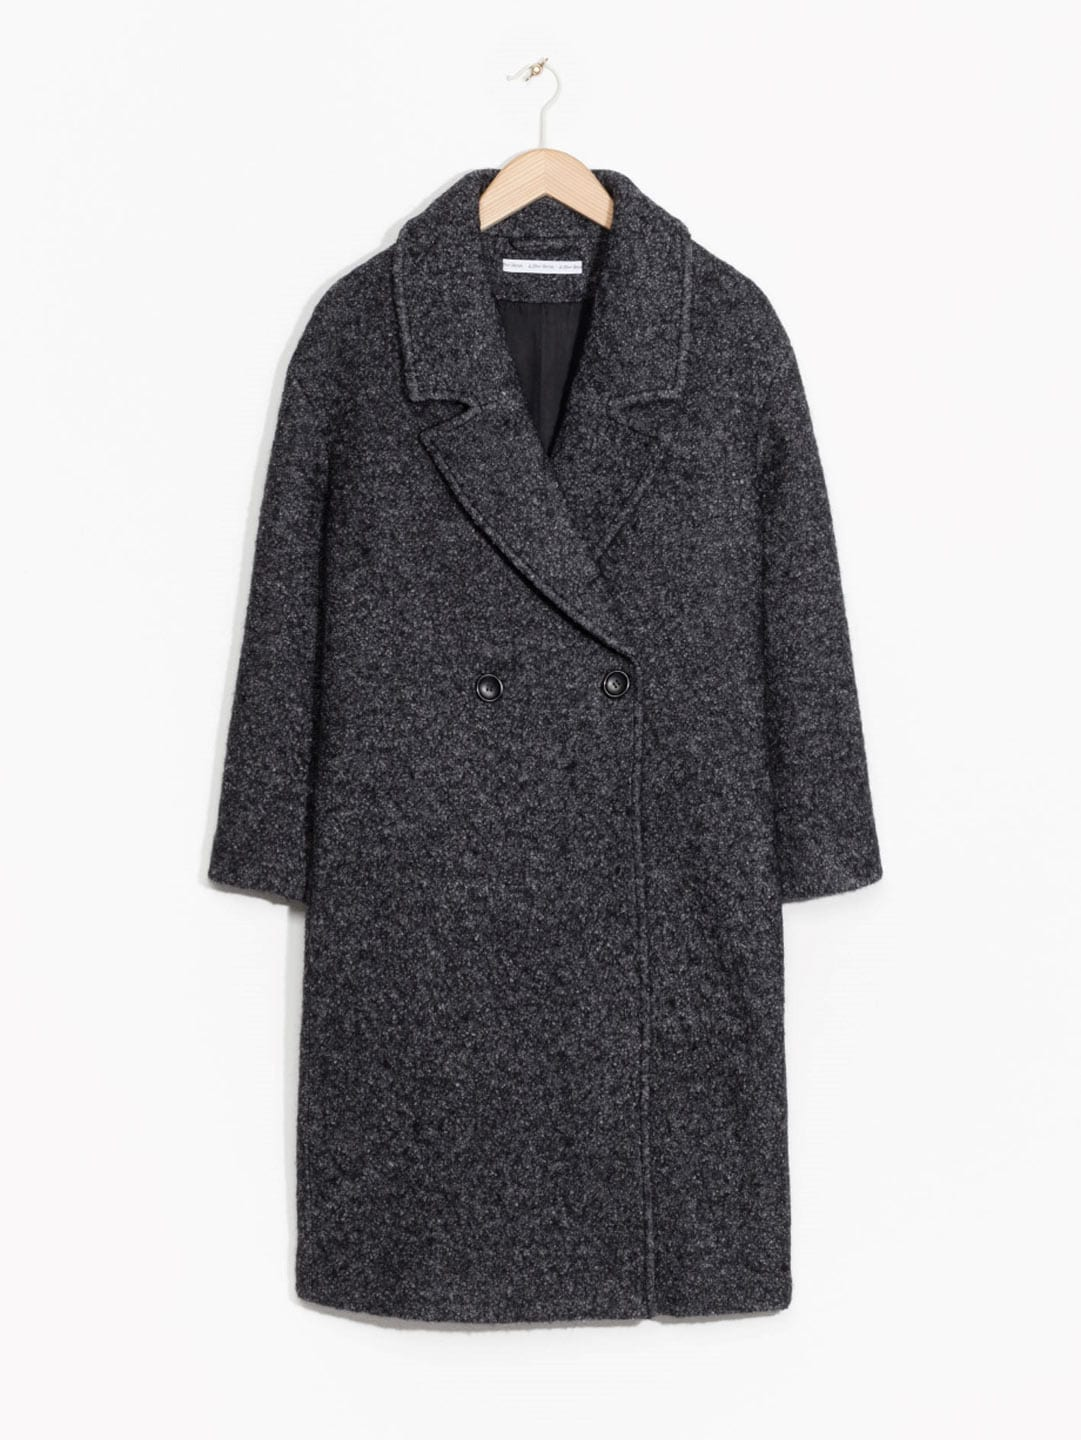 Best Winter Coats | & Other Stories Wool Blend Coat in Dark Grey